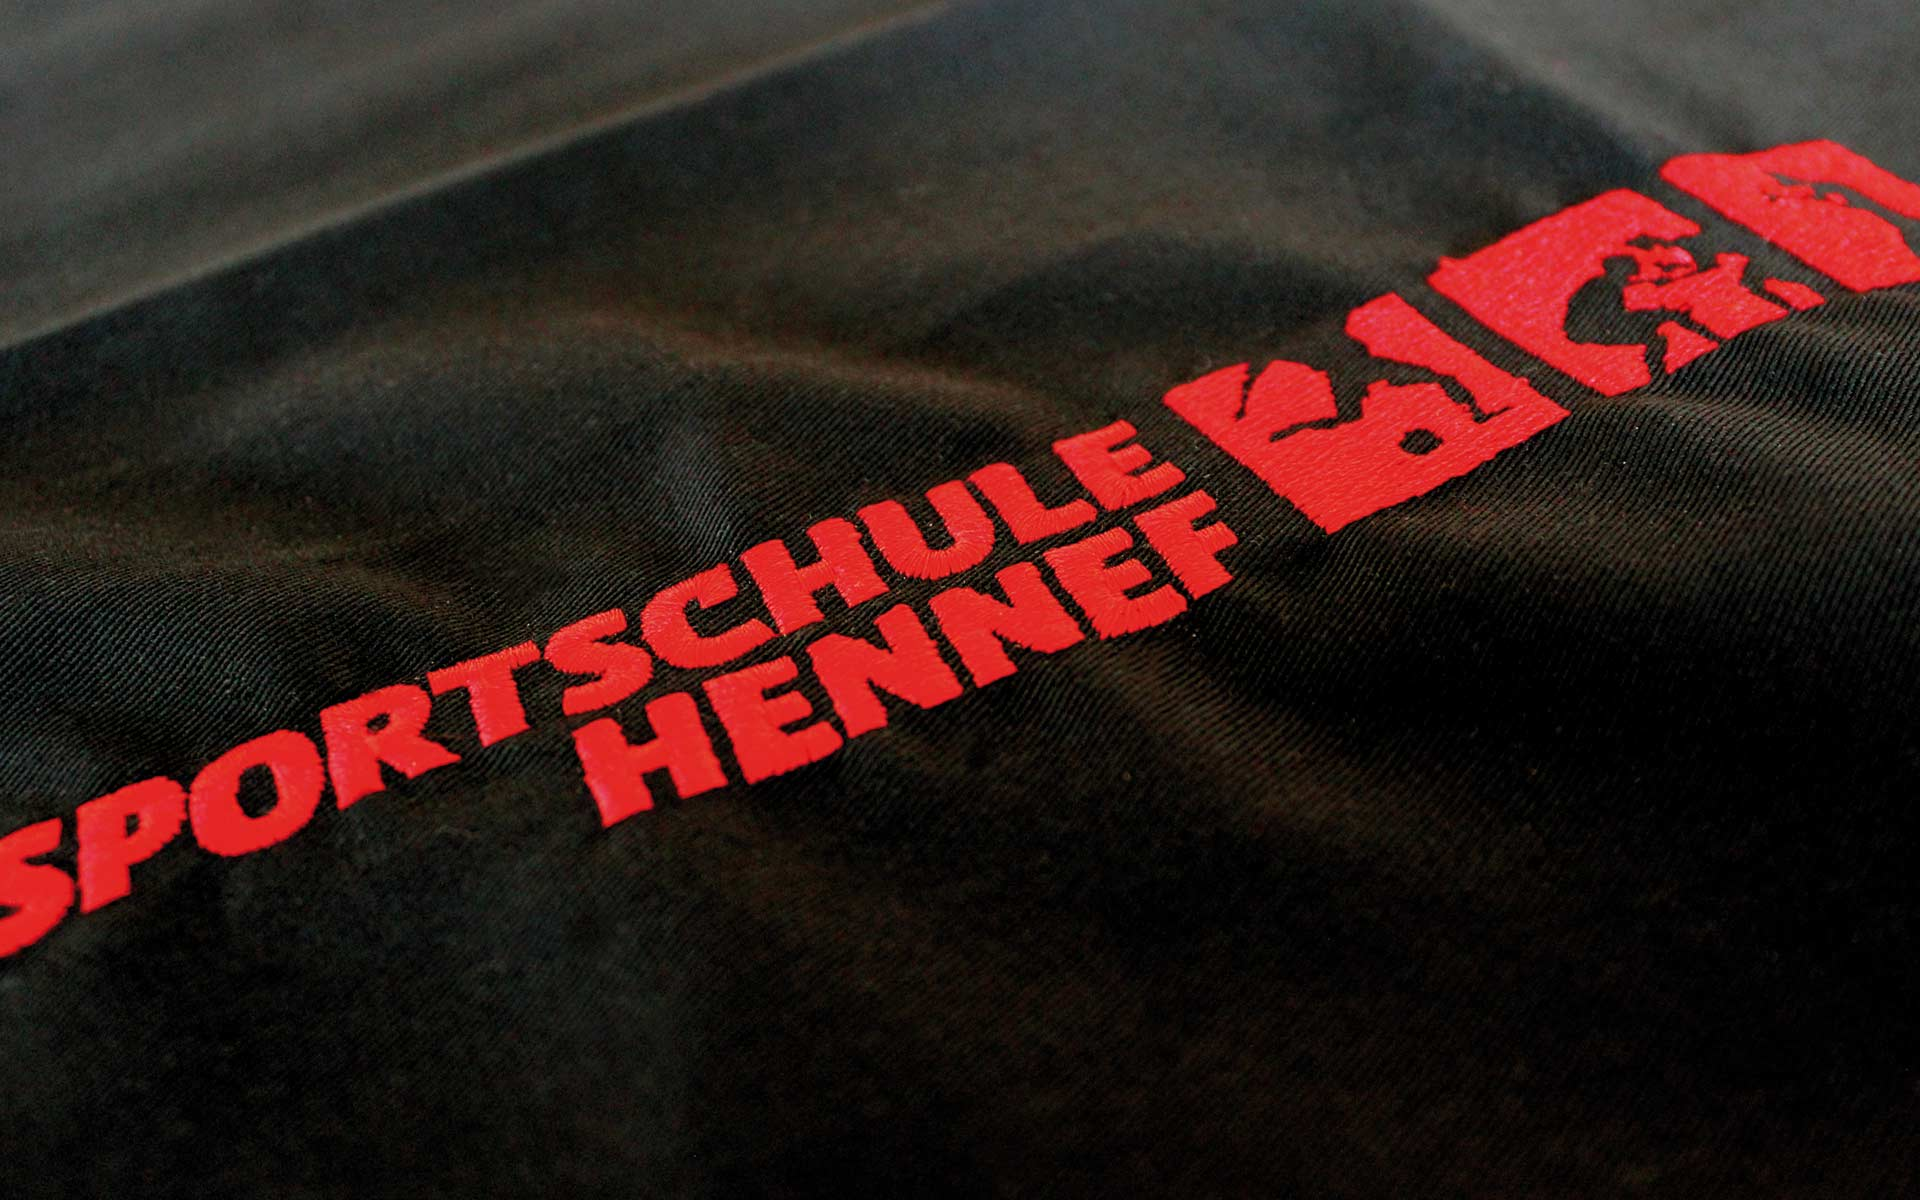 Sportschule-Hennef Corporate Design, Logotype, Textil-Stickerei